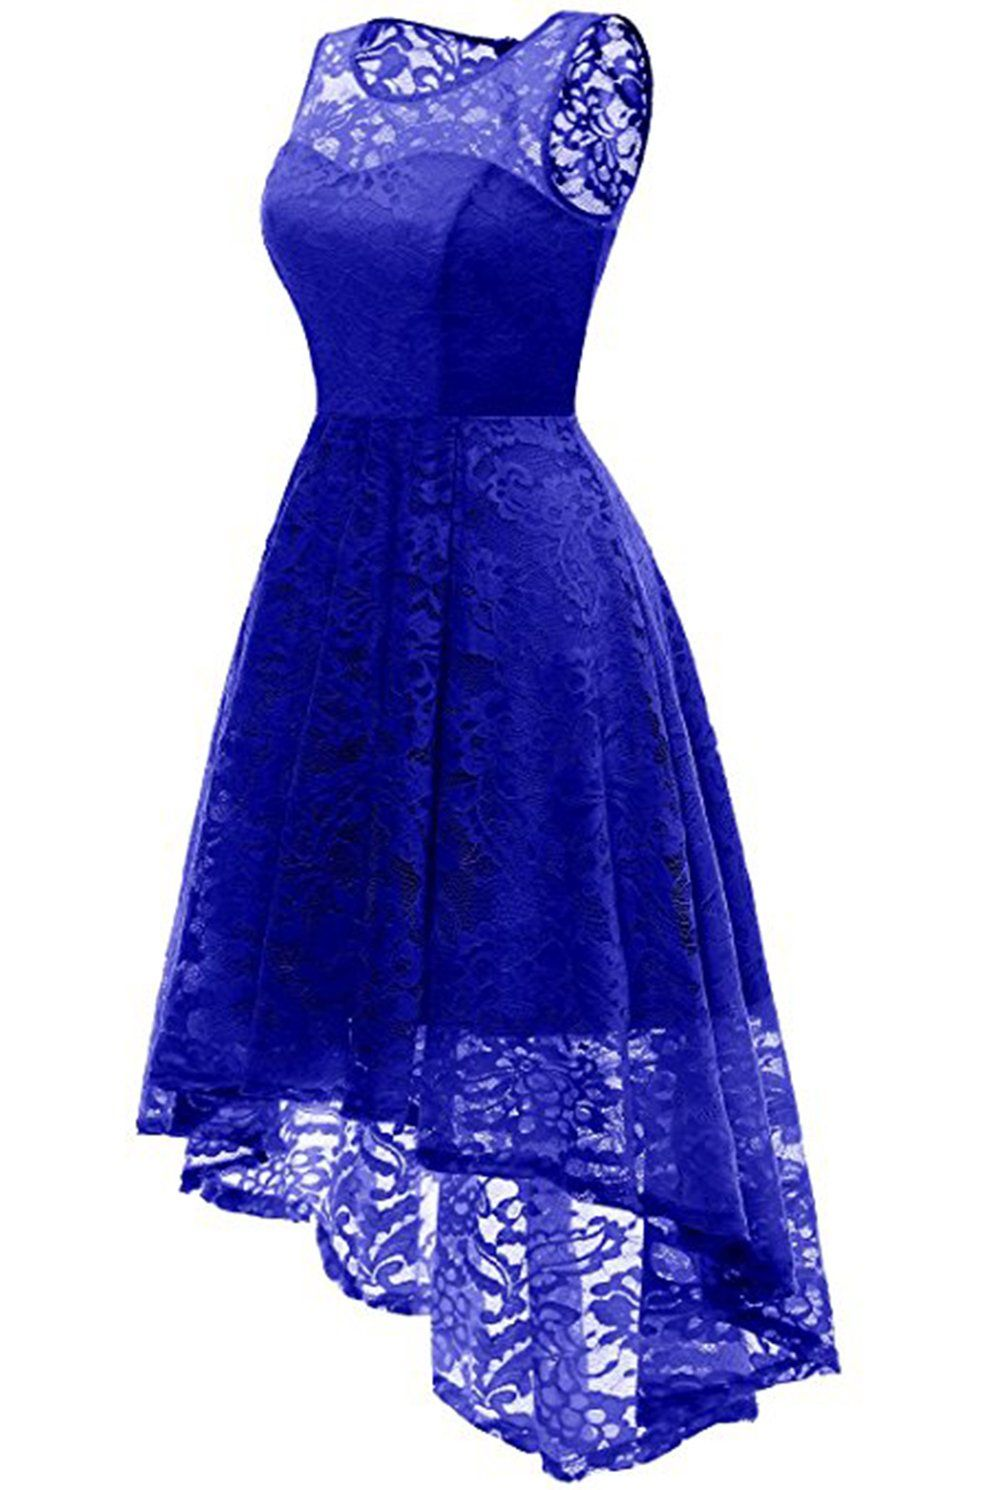 Aa chicloth women floral lace bridesmaid party dress short prom